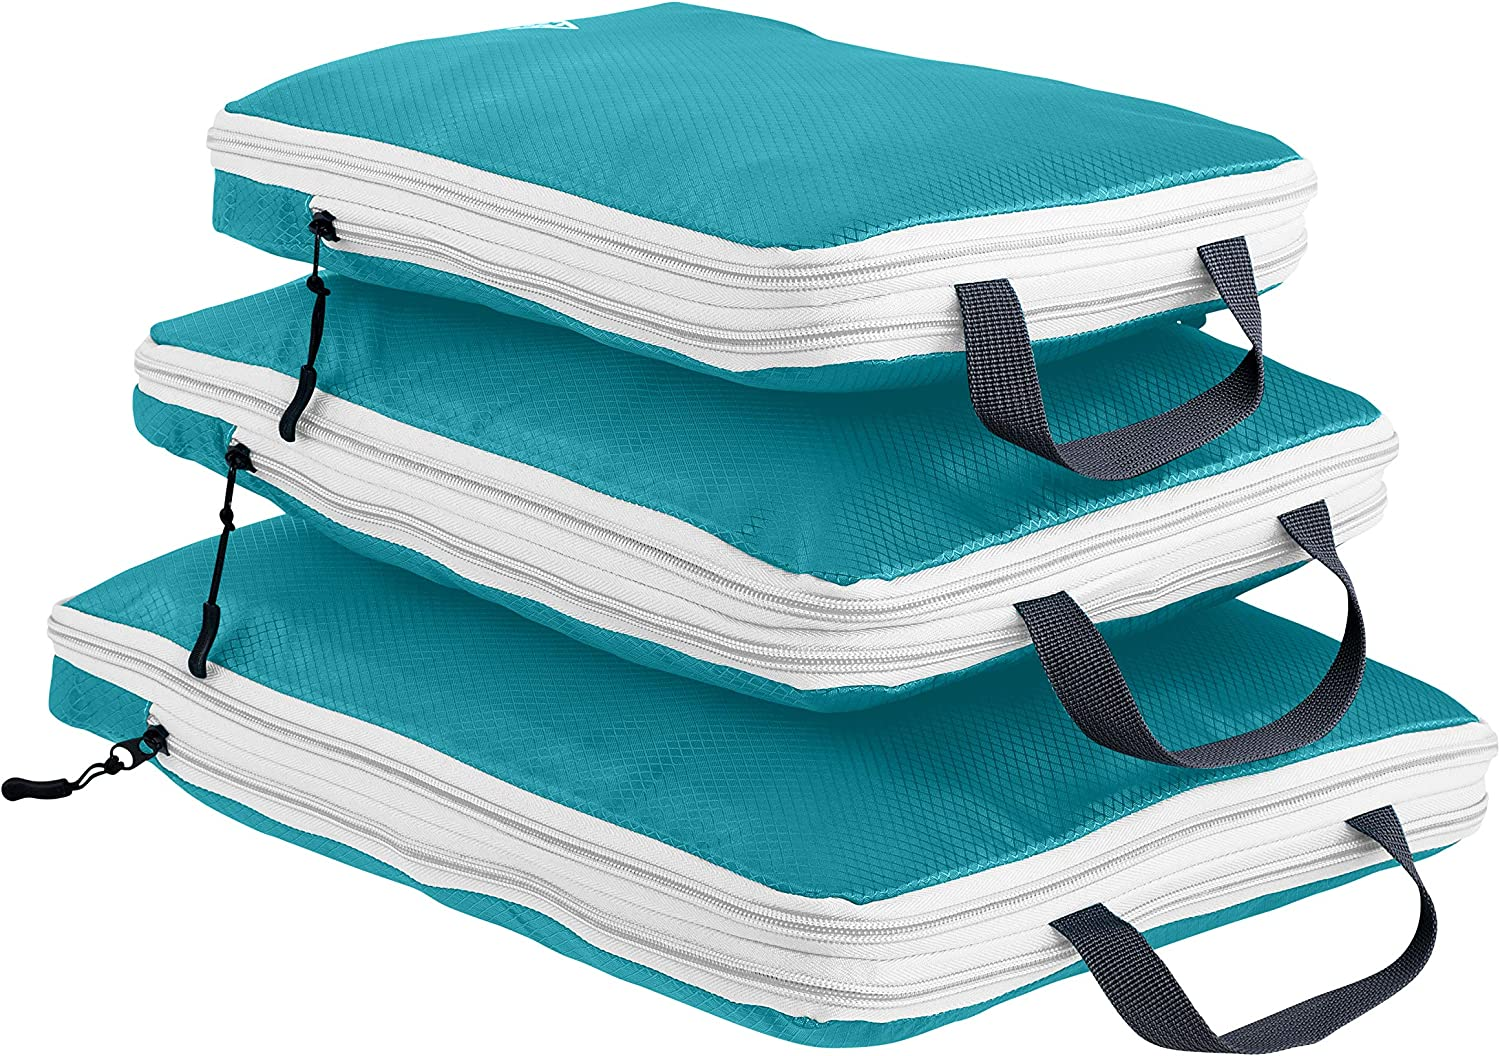 Suitcase Organizer /& Backpack Organizer with Space Saver Travel Bags for Packing Clothes Travel Gear /& Travel Accessories Luggage Organizer 3pc Compression Packing Cubes for Travel Well Traveled